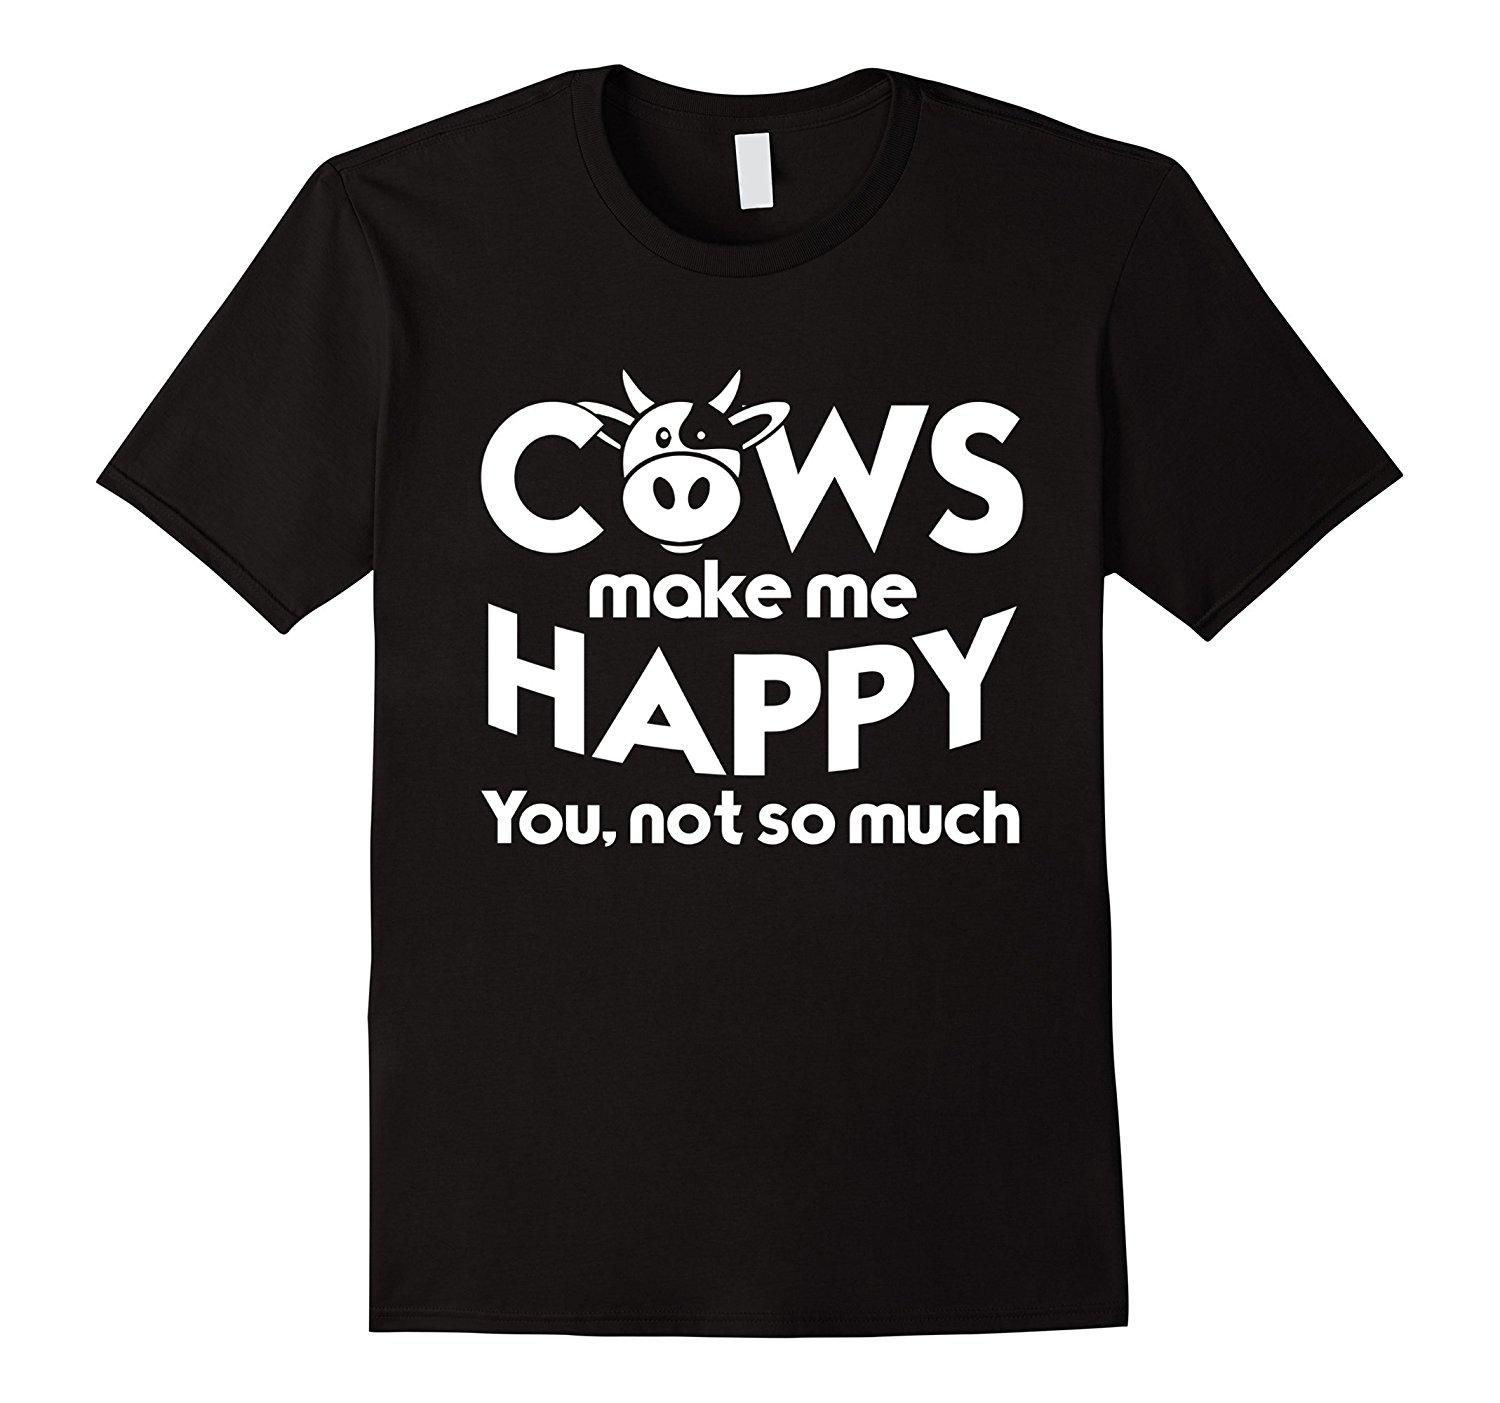 e37f0f8f0a676 Cows Make Me Happy You Not So Much T Shirt Mens Tops Cool O Neck T Shirt  Top Tee Western Style Loose Clothes Plus Size Designable T Shirts Buy Funny  Shirts ...